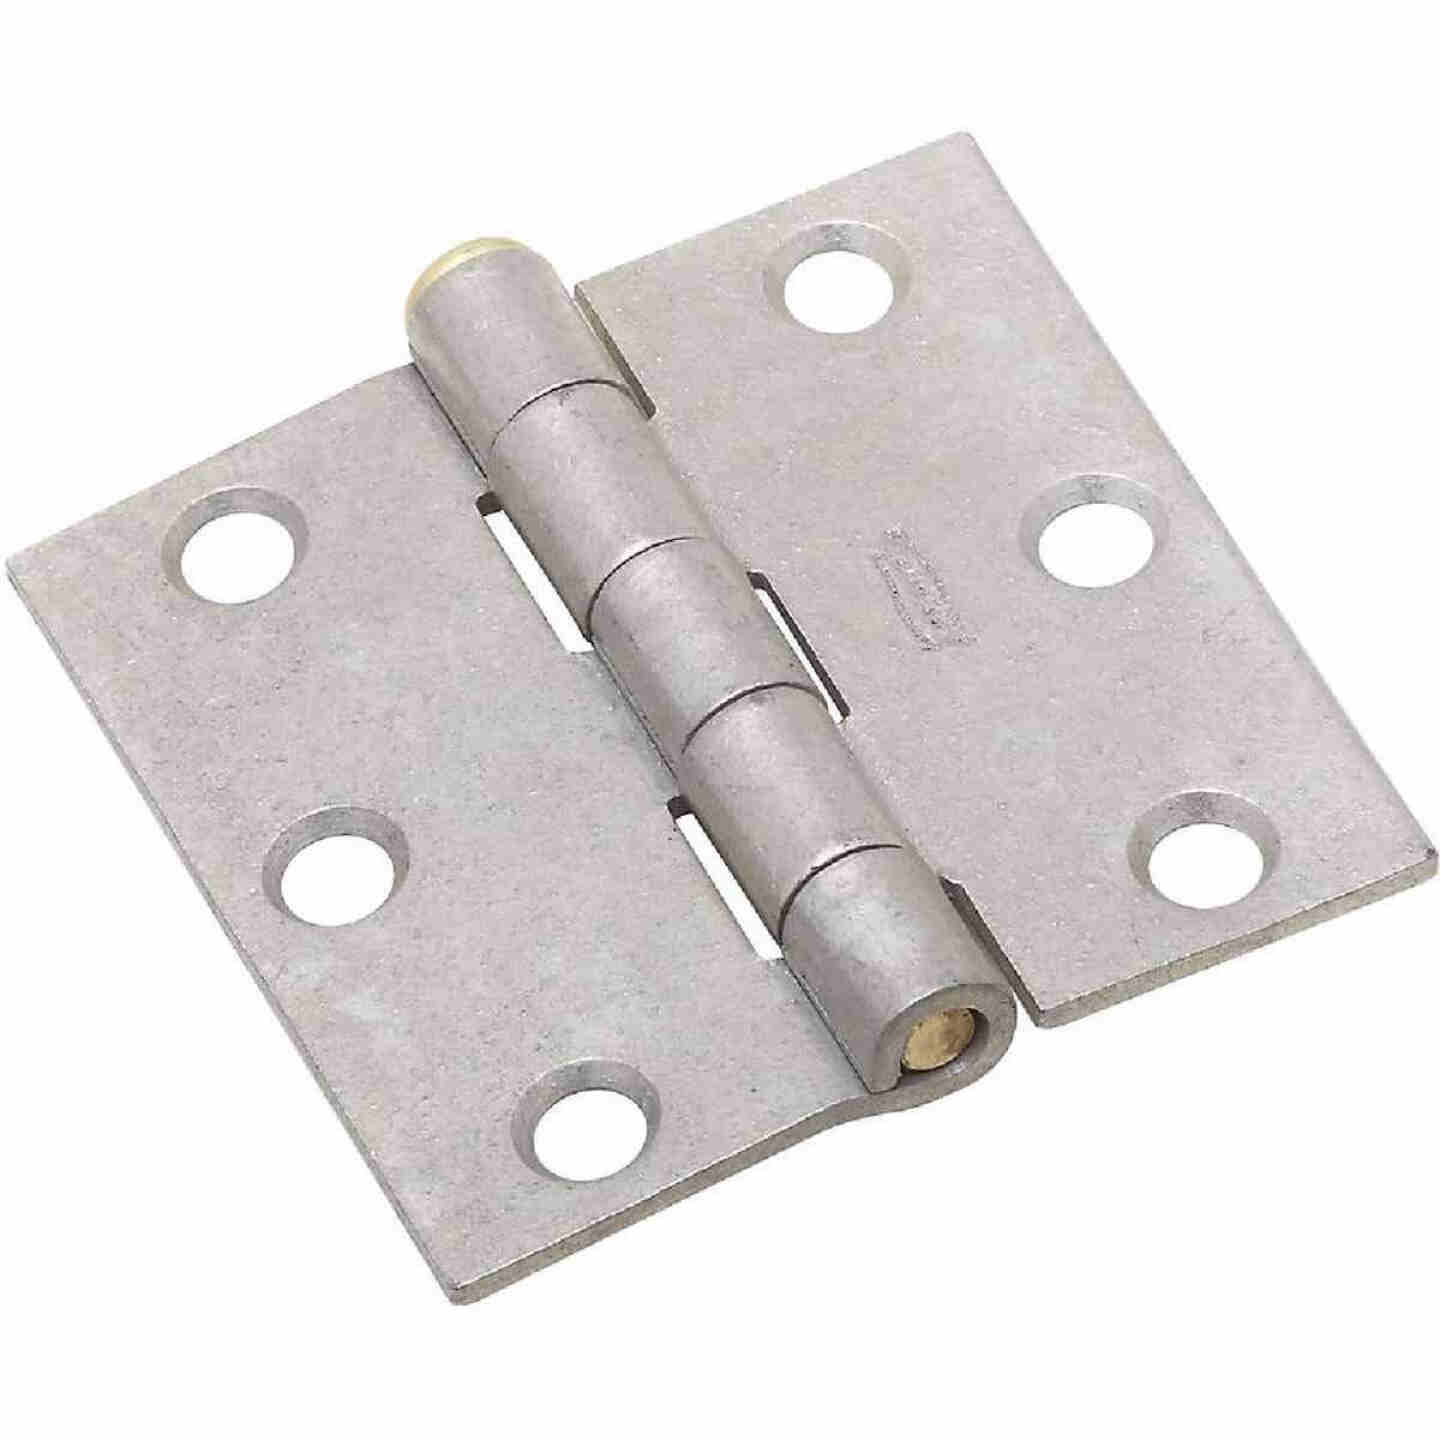 National 2-1/2 In. Galvanized Removable Pin Broad Hinge Image 1